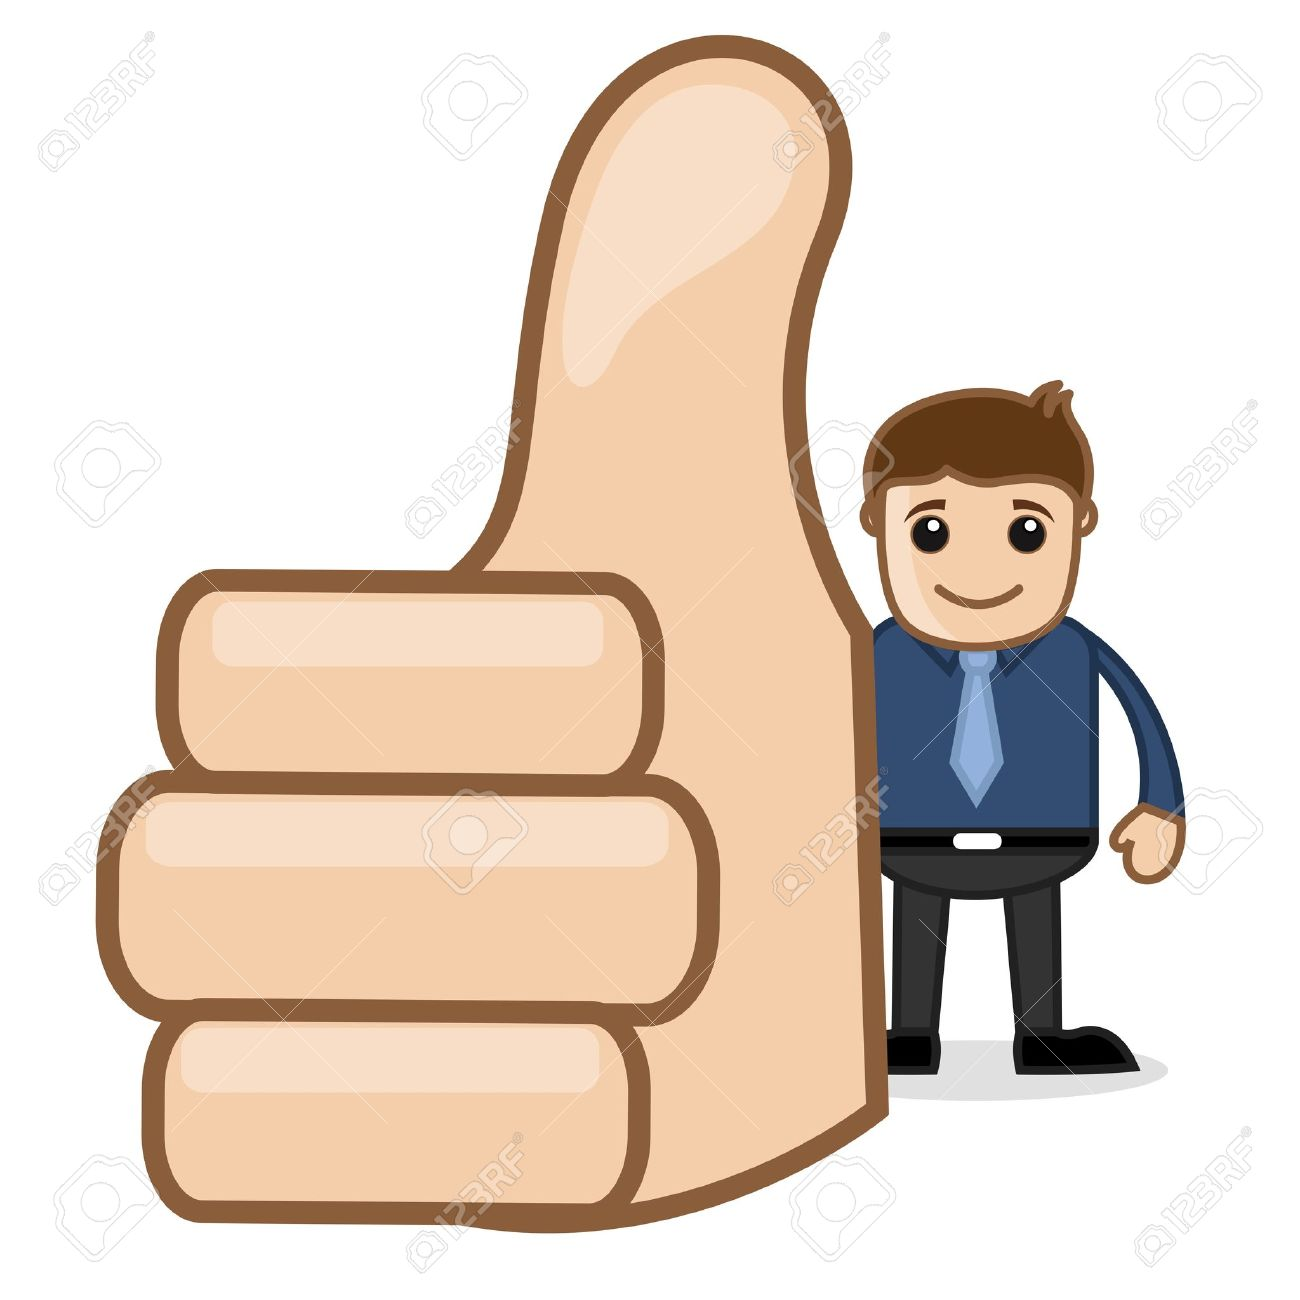 Office and Business Cartoon Character Vector  Illustration - Showing Thumbs Up Stock Illustration - 19284925